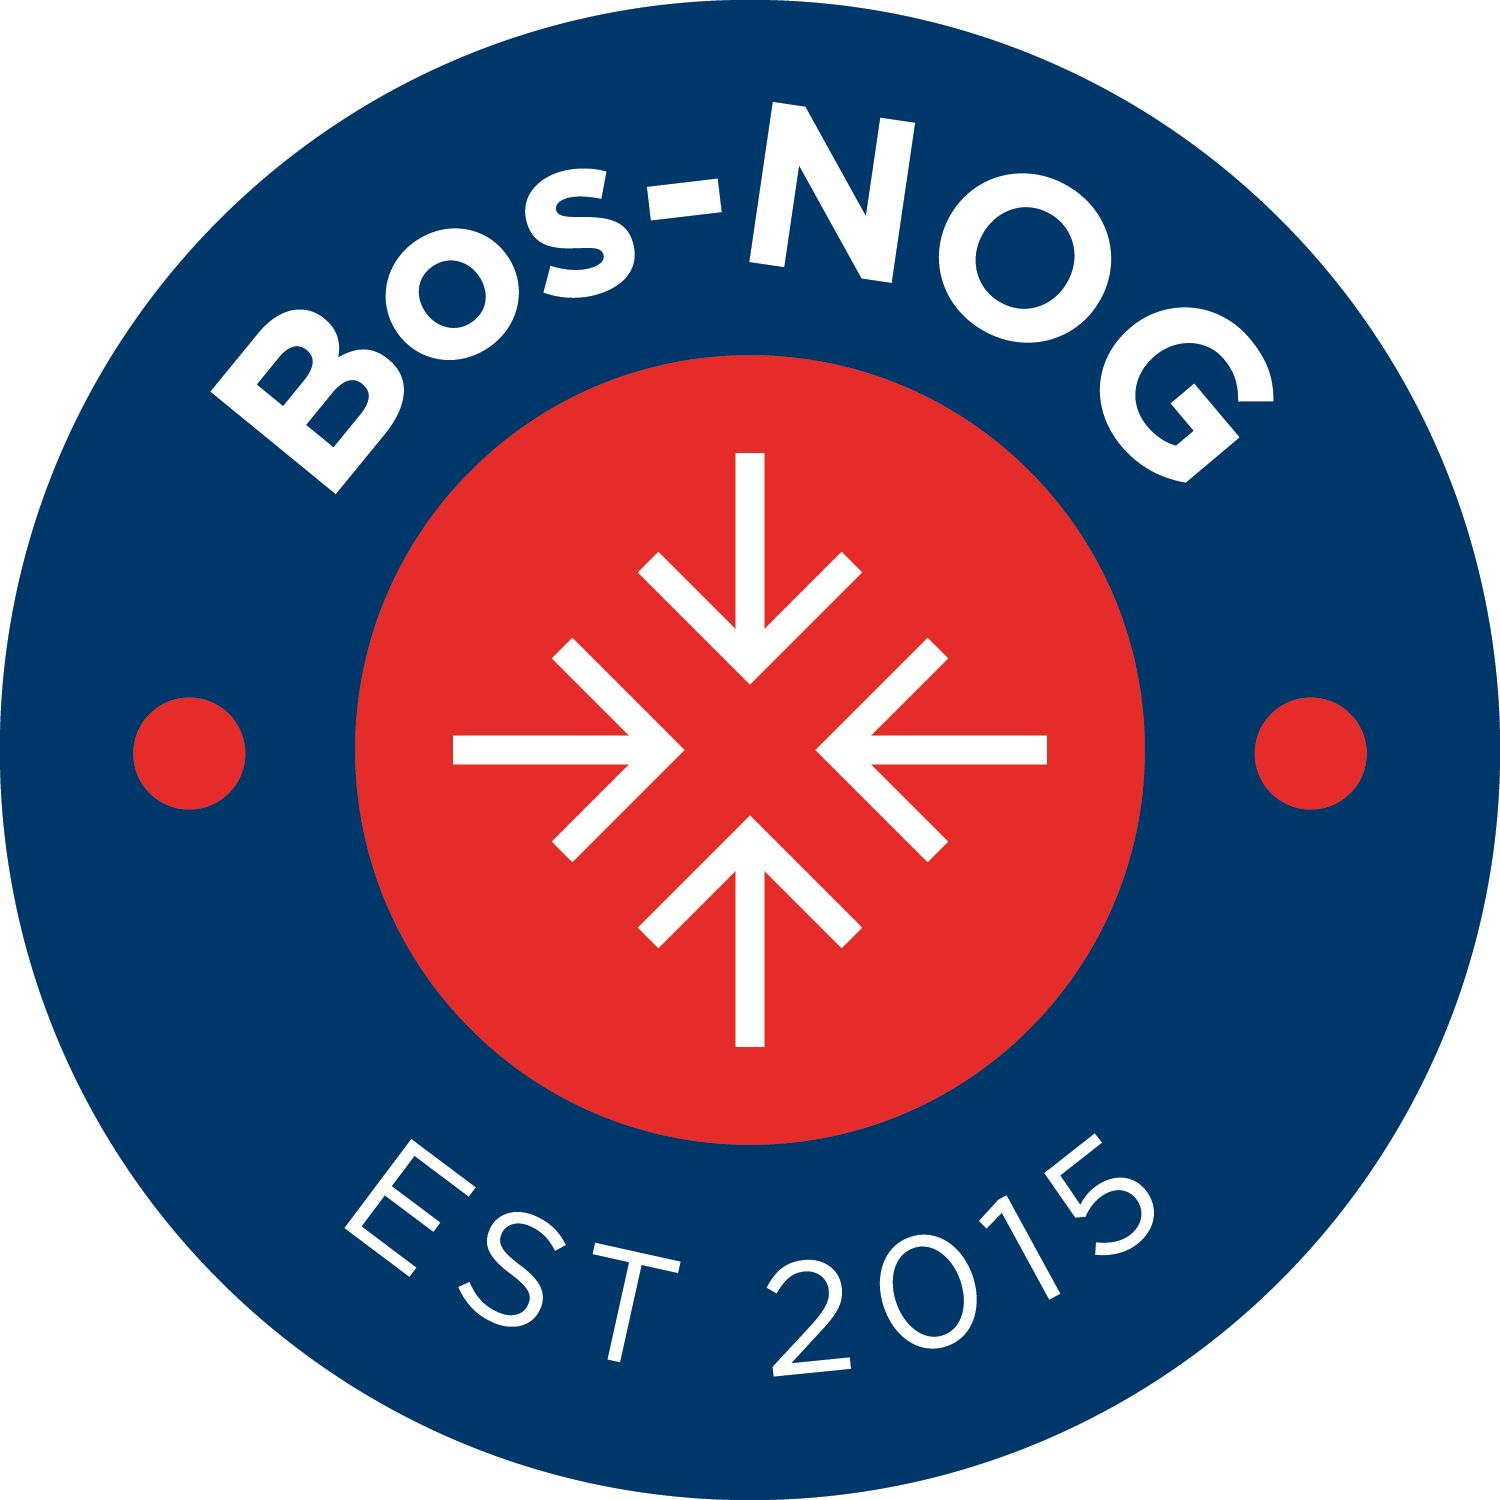 BOSNOG: The Boston Network Operators Group